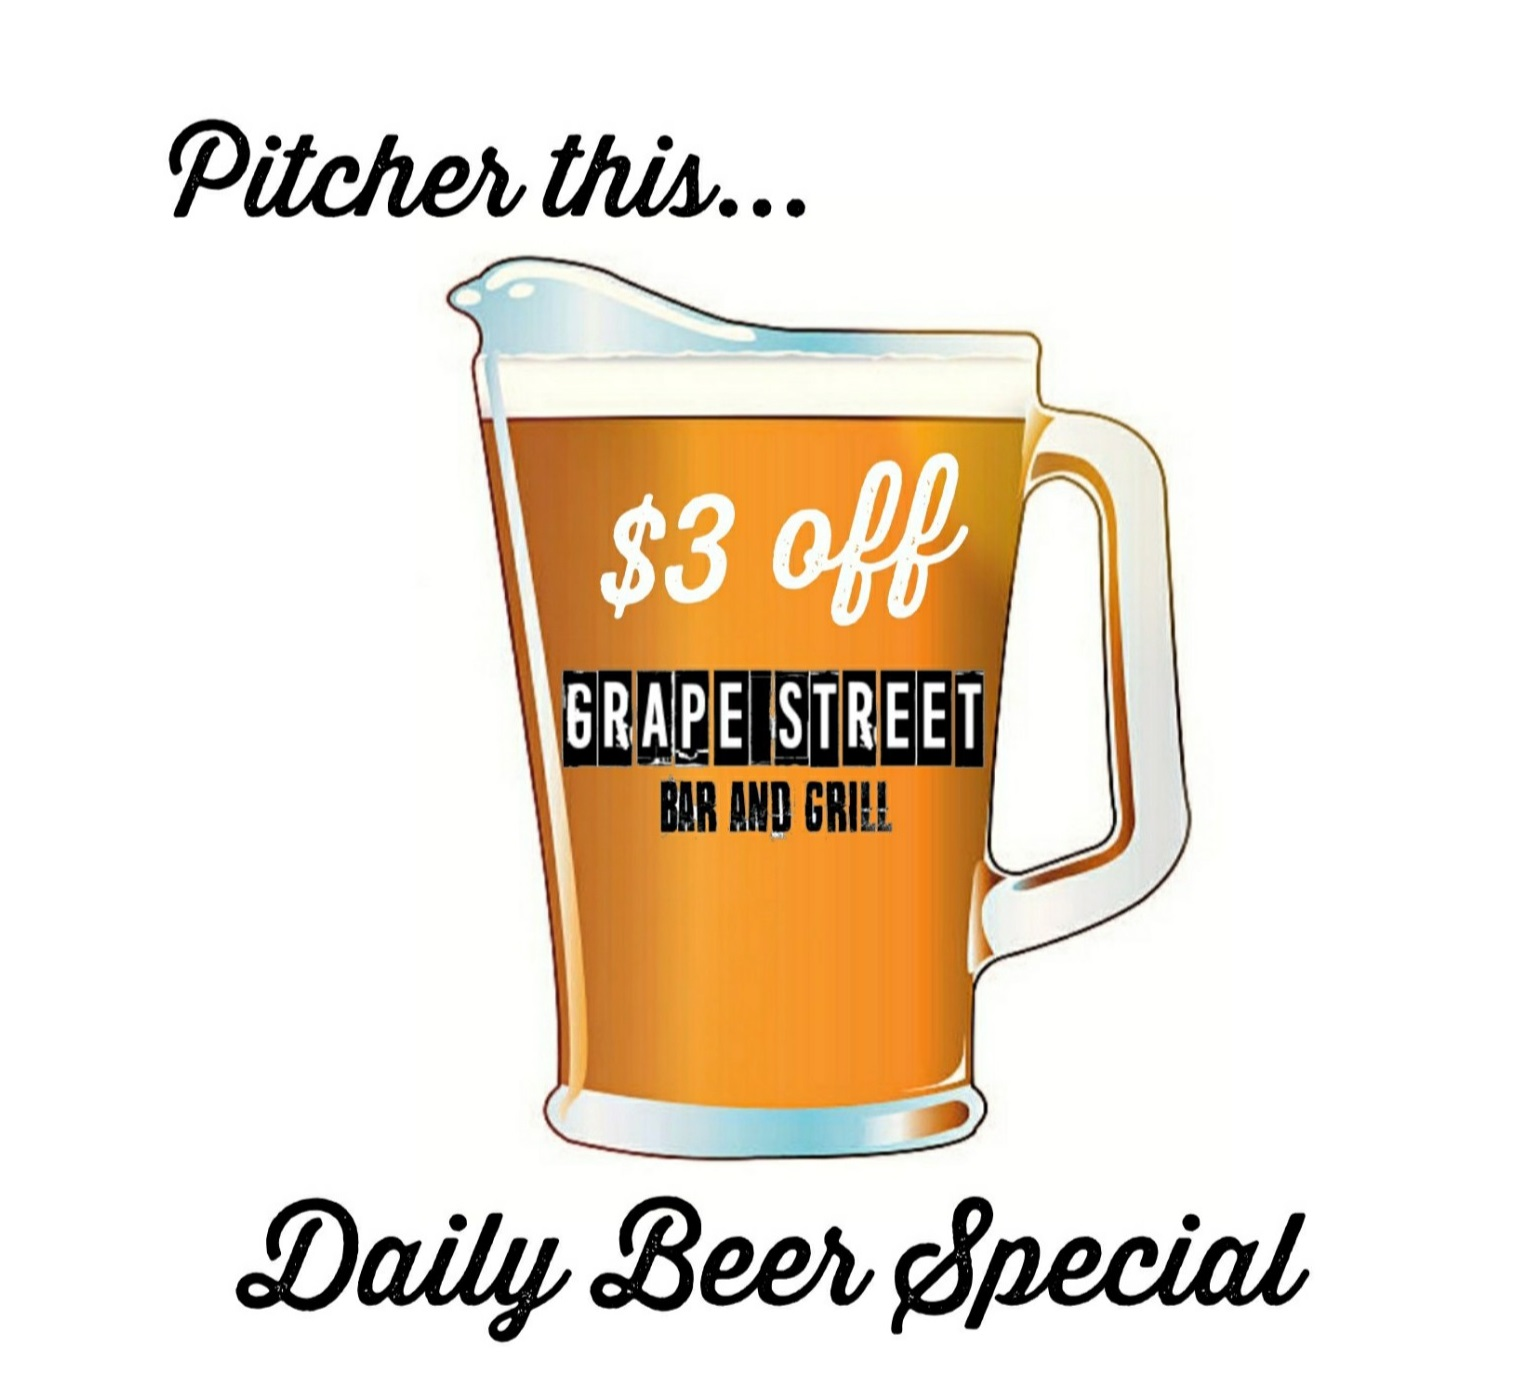 Grape Street Beer Special without address